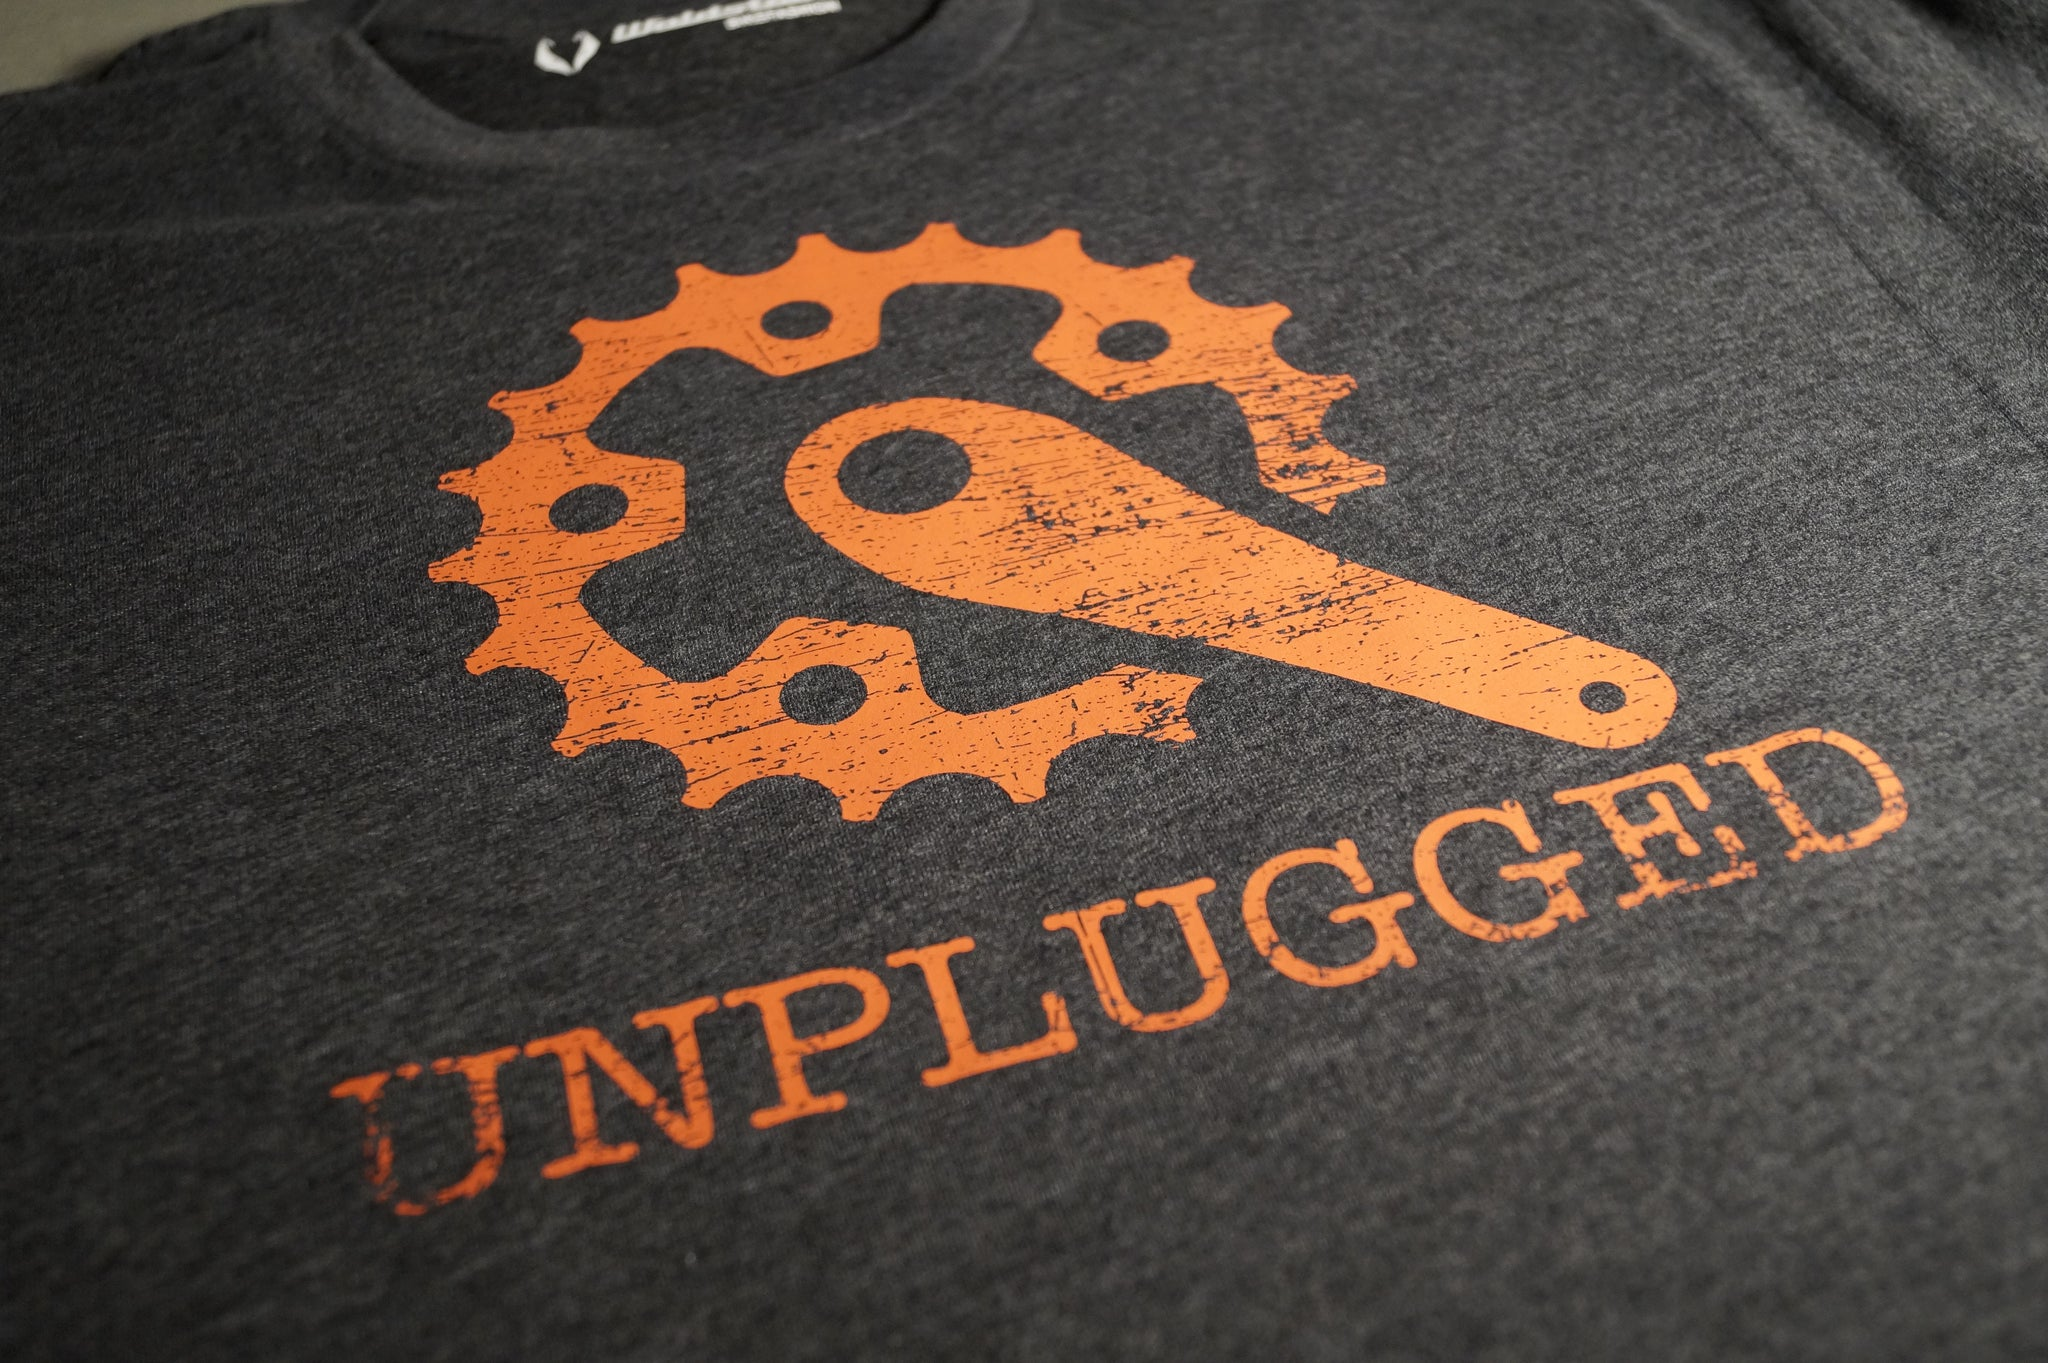 Unplugged T-Shirt heather metal PREMIUM